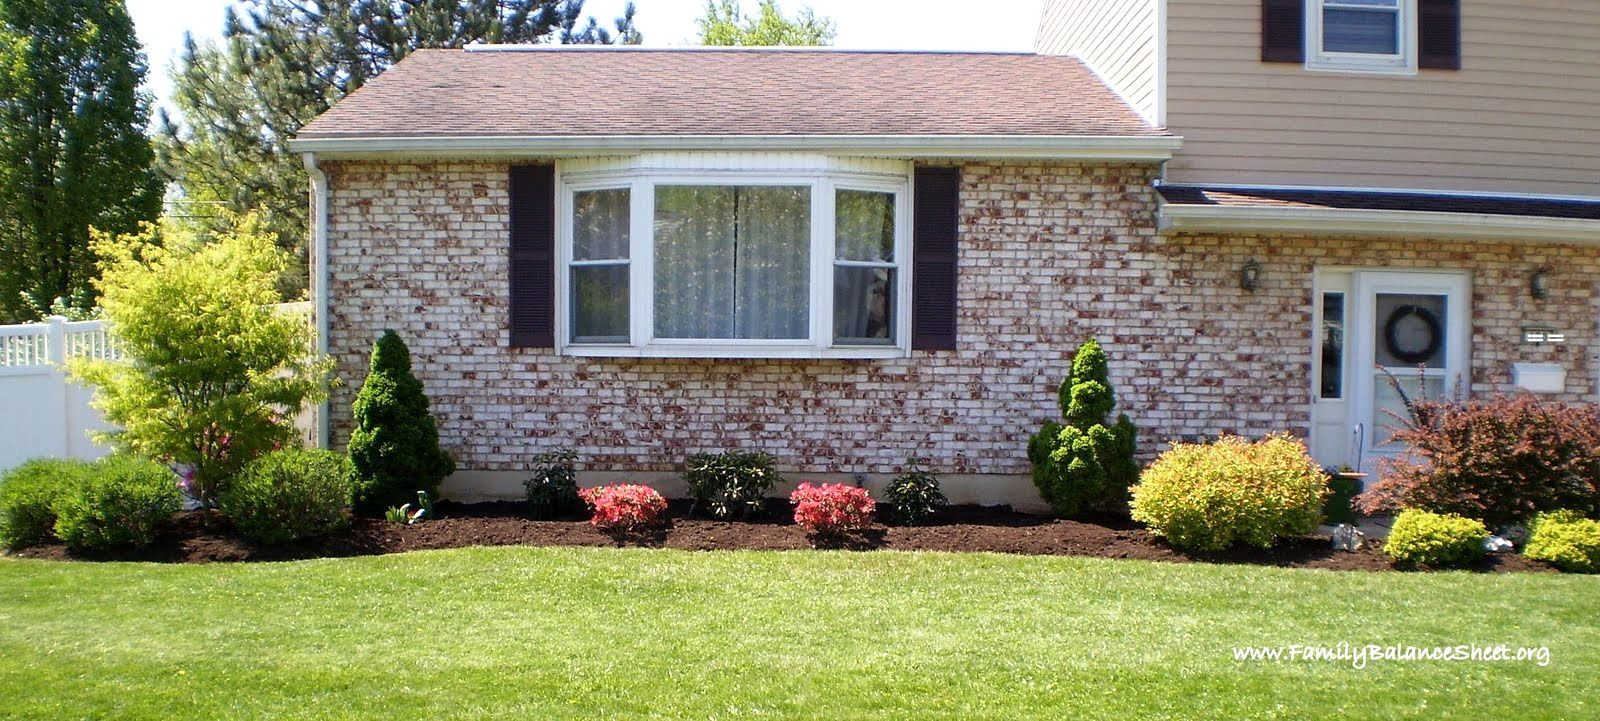 Landscaping ideas front yard ranch style home front yard for Simple front garden designs